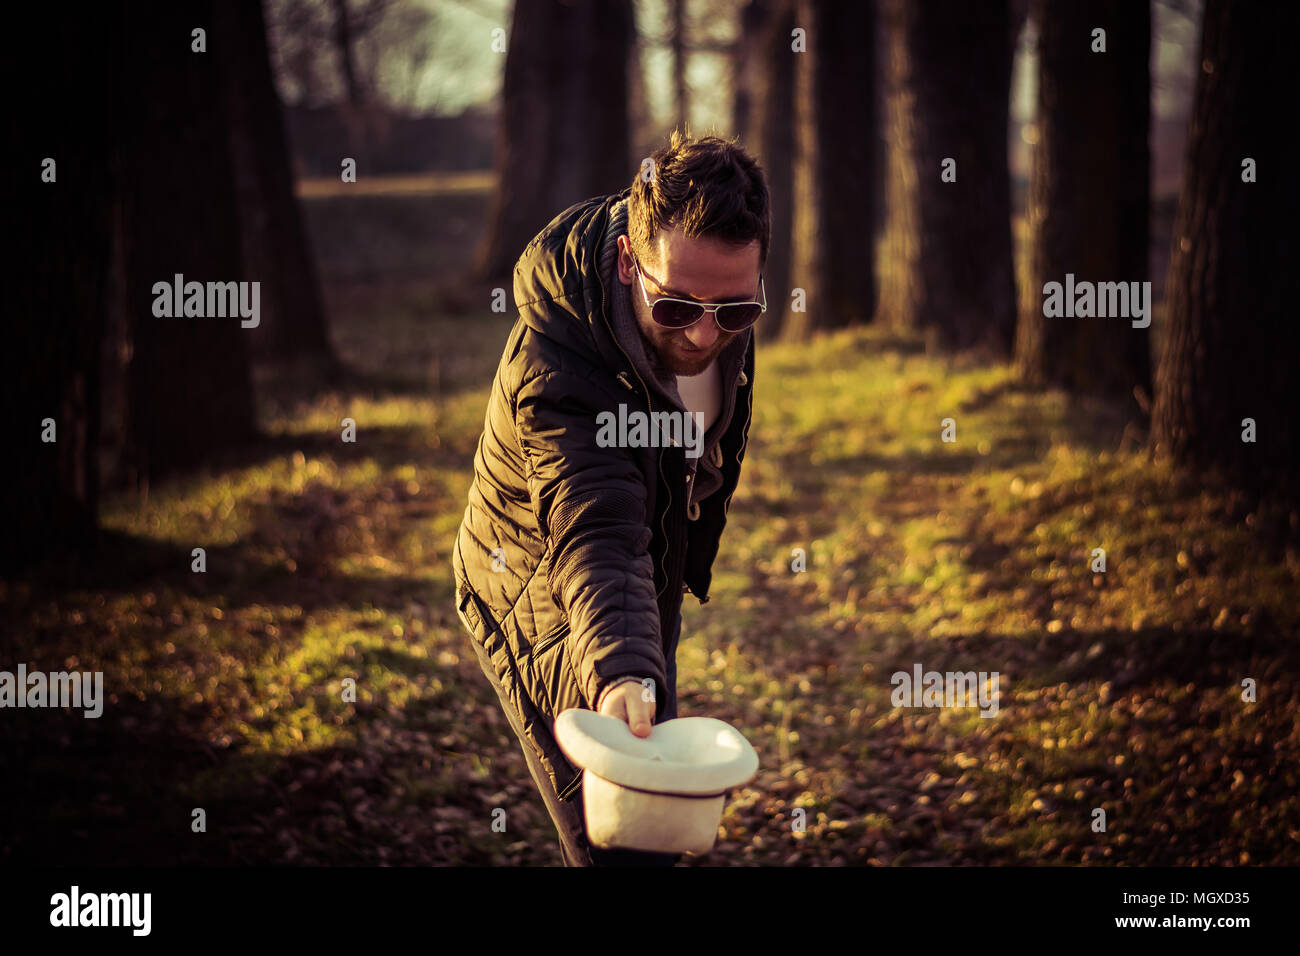 Portrait of a young men, gentleman, with a beard, hat and sunglasses, bowing; outdoor, nature - Stock Image